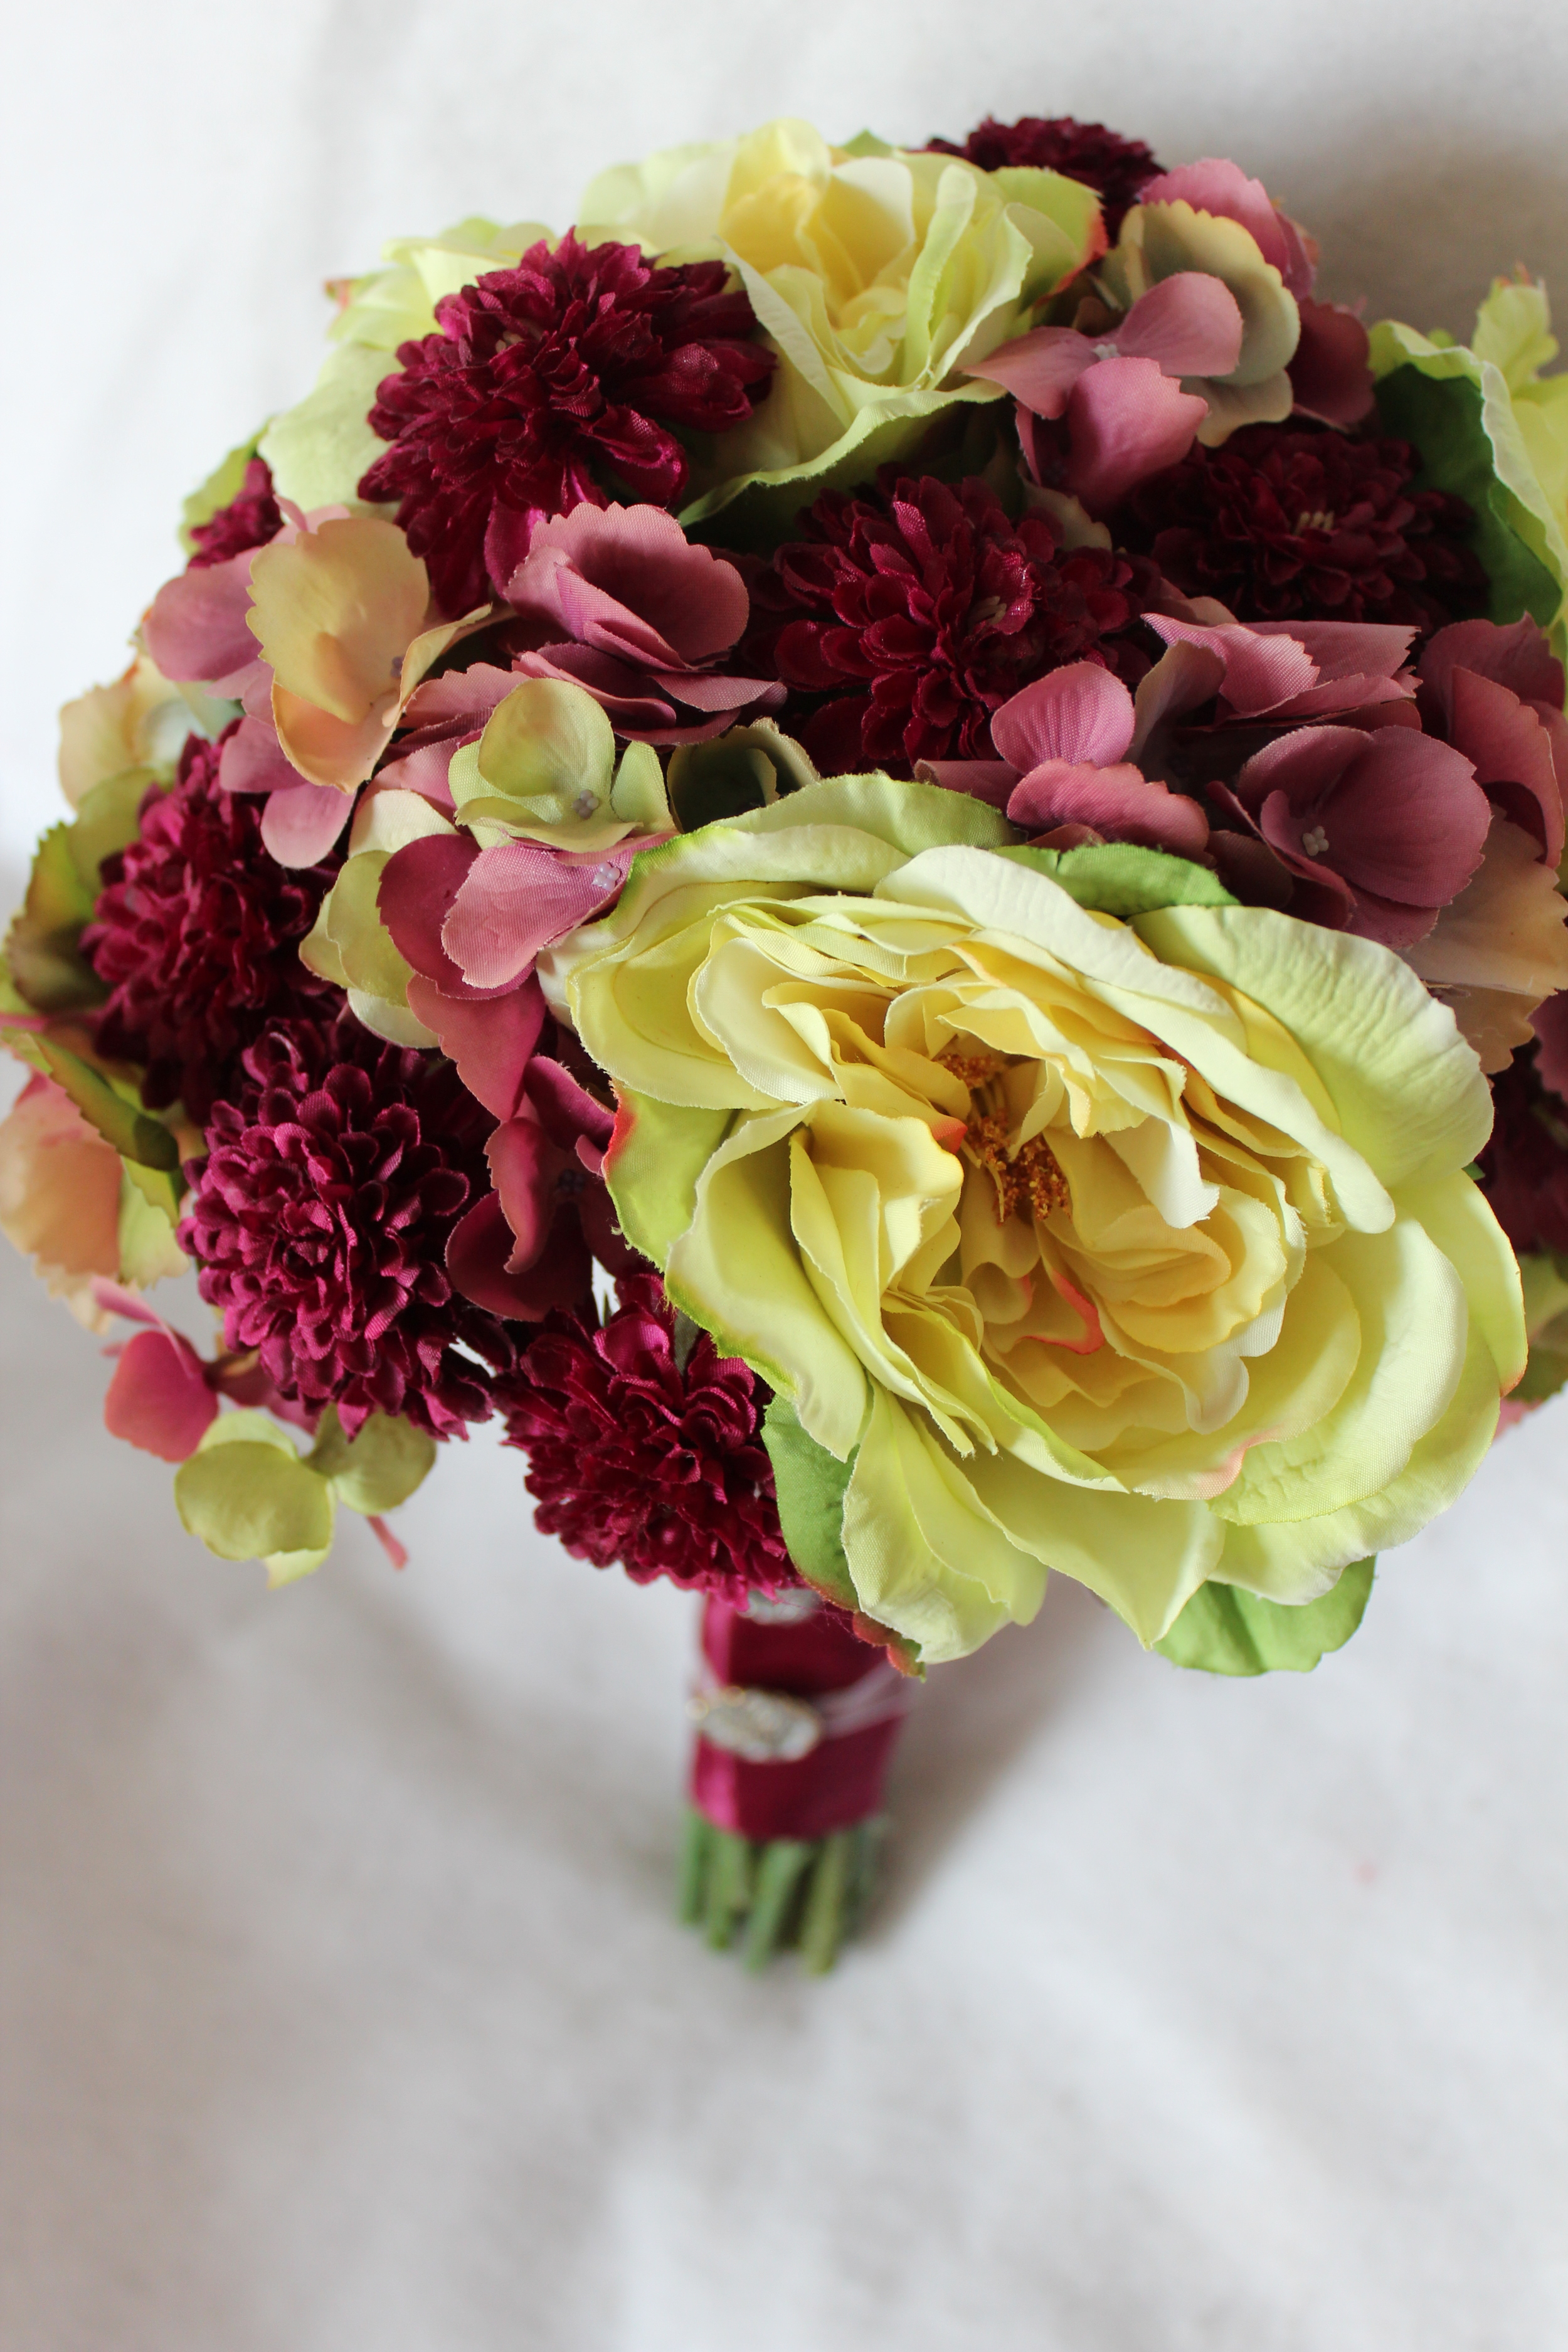 minneapolis-silk-florist-weddingflowers-bridal-bouquet.jpg